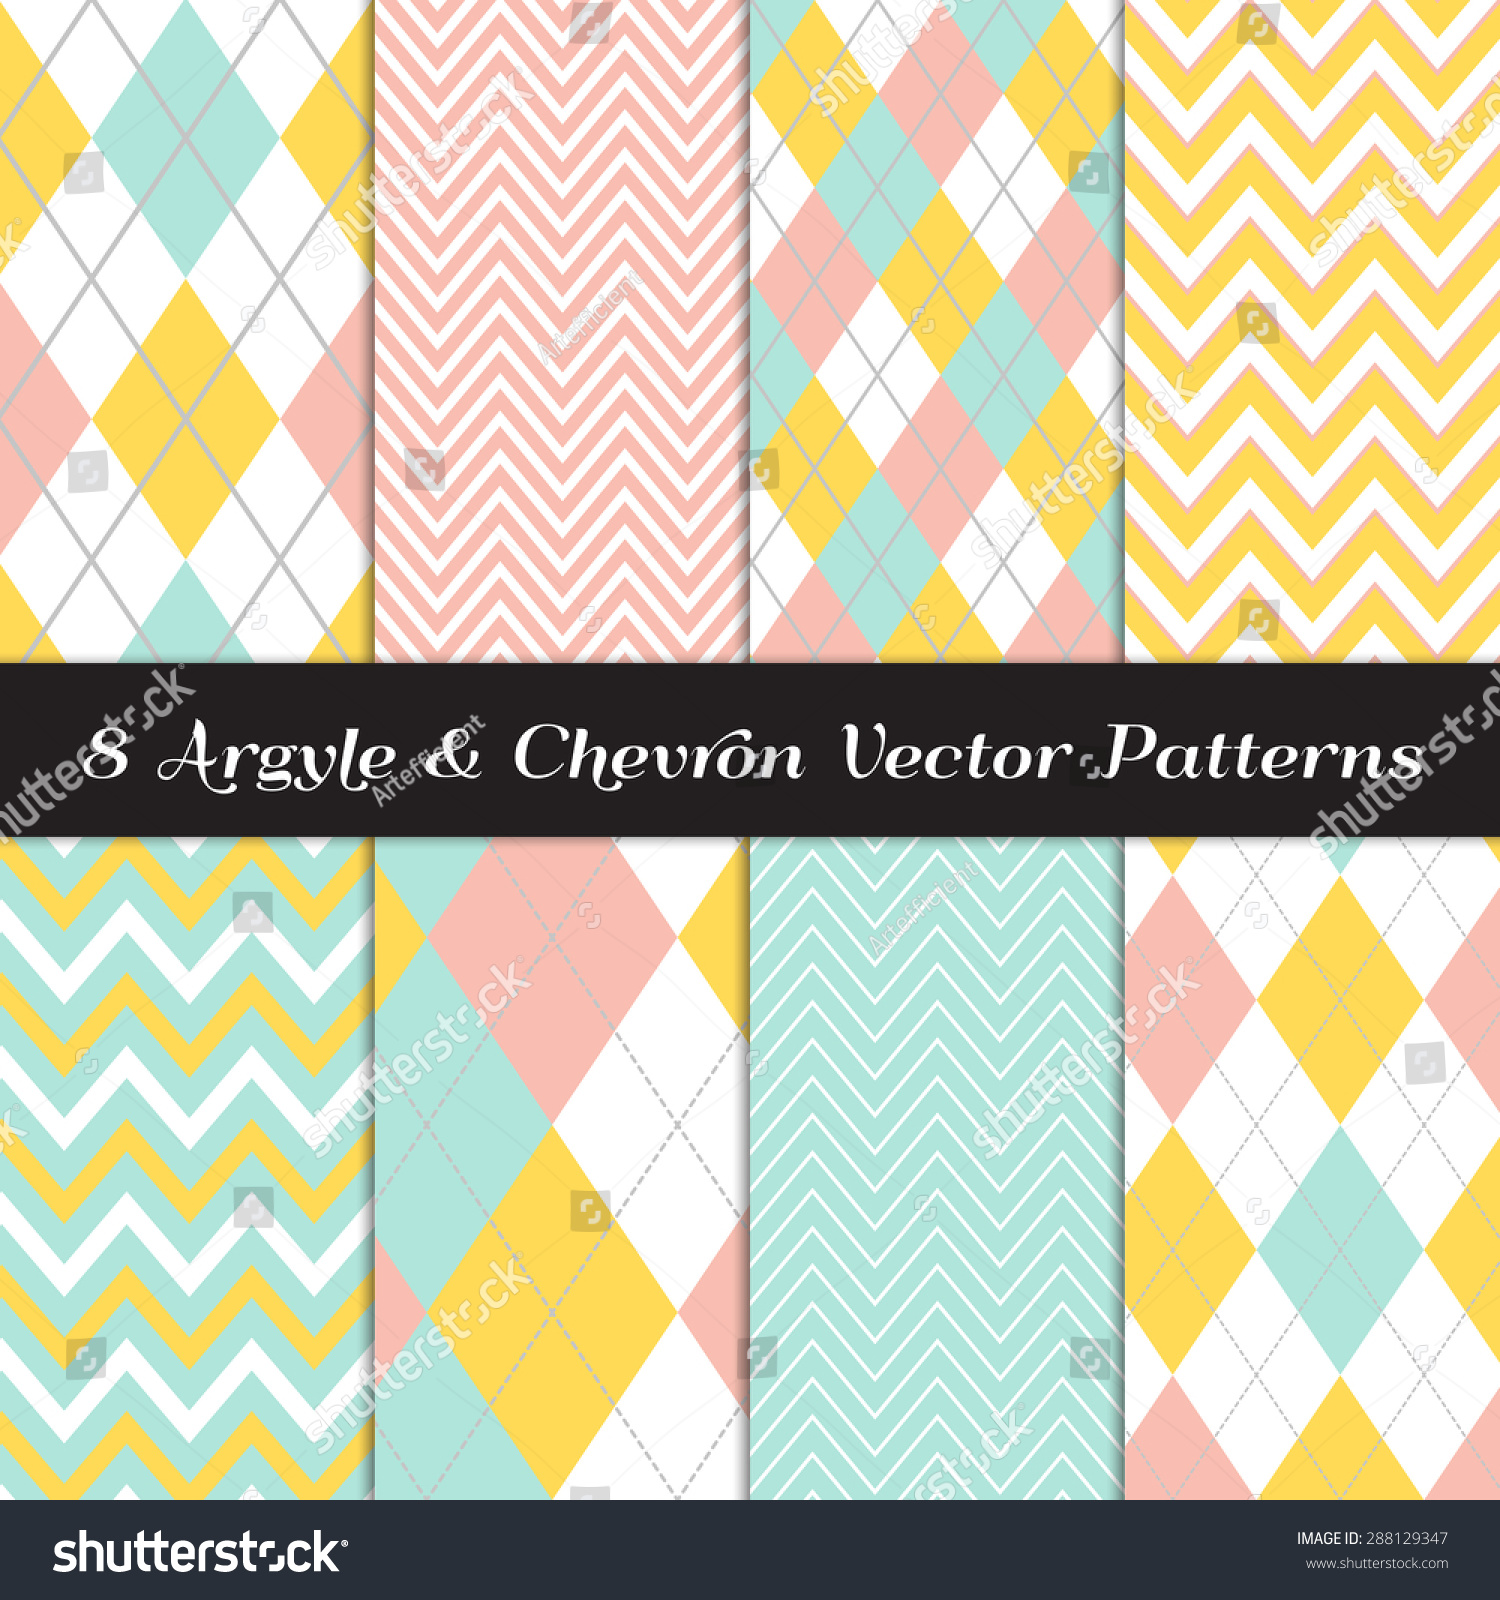 Pics photos merry christmas argyle twitter backgrounds - Yellow Mint Coral And White Chevron And Argyle With Solid And Dashed Lines Patterns